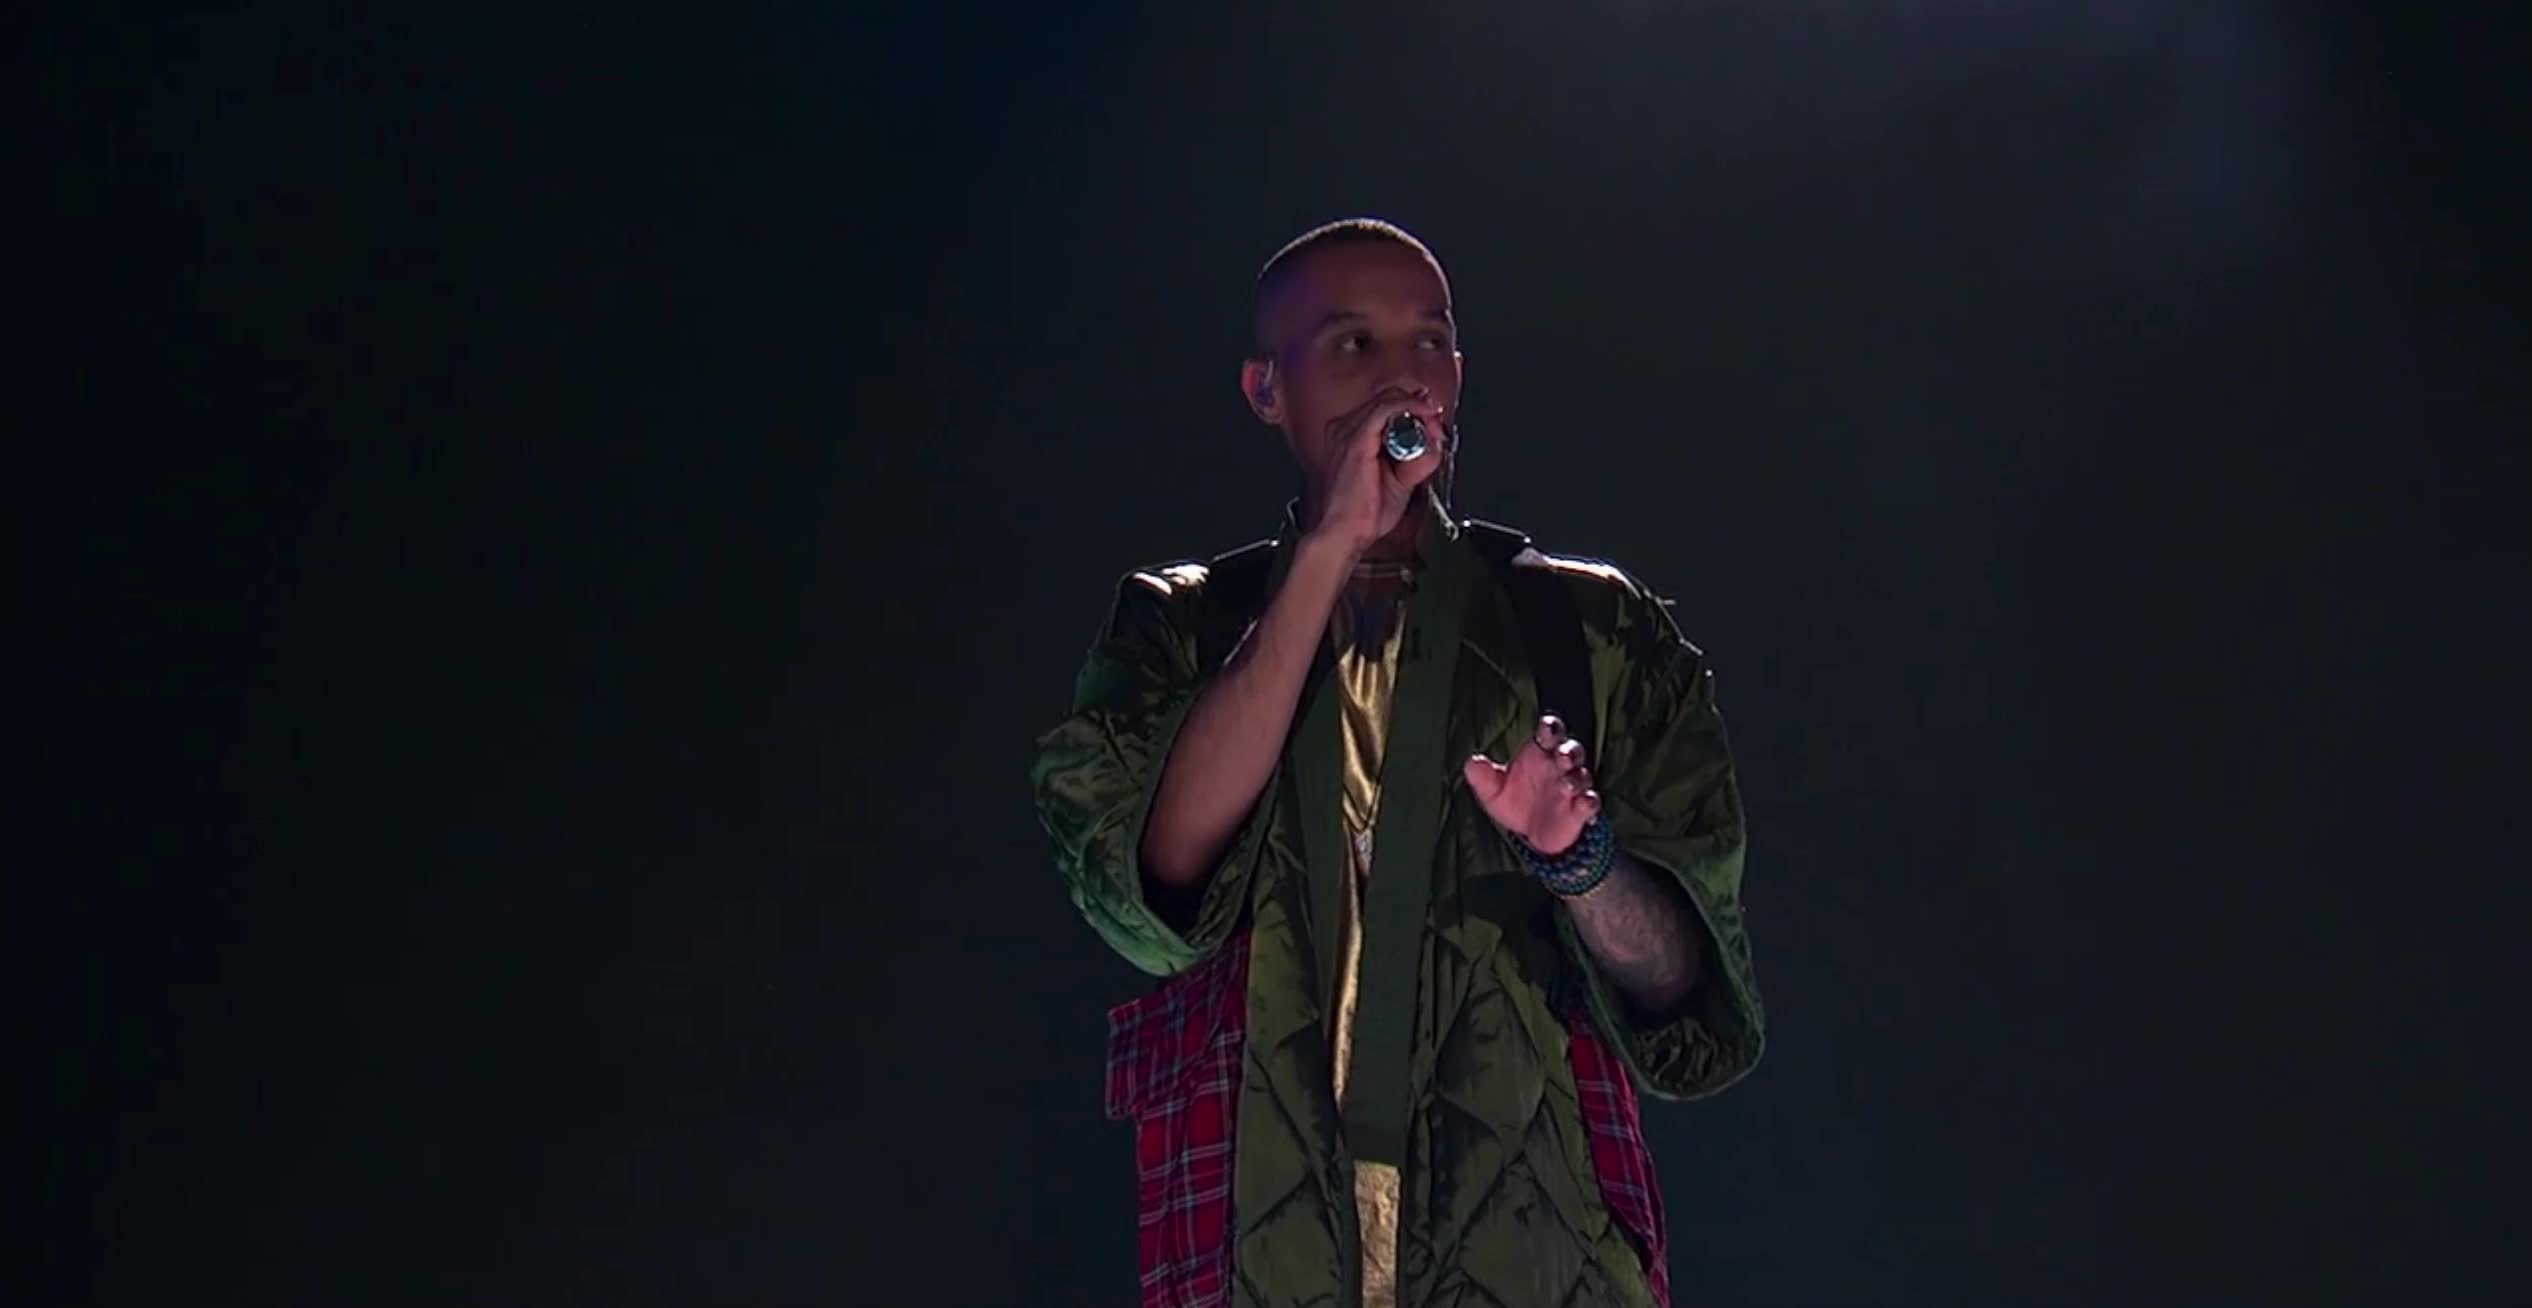 american idol, american idol season 17, americanidol, dimitrius graham, katy perry, lionel richie, luke bryan, ryan seacrest, season 17, singing, American Idol Dimitrius Starting His Performance GIFs